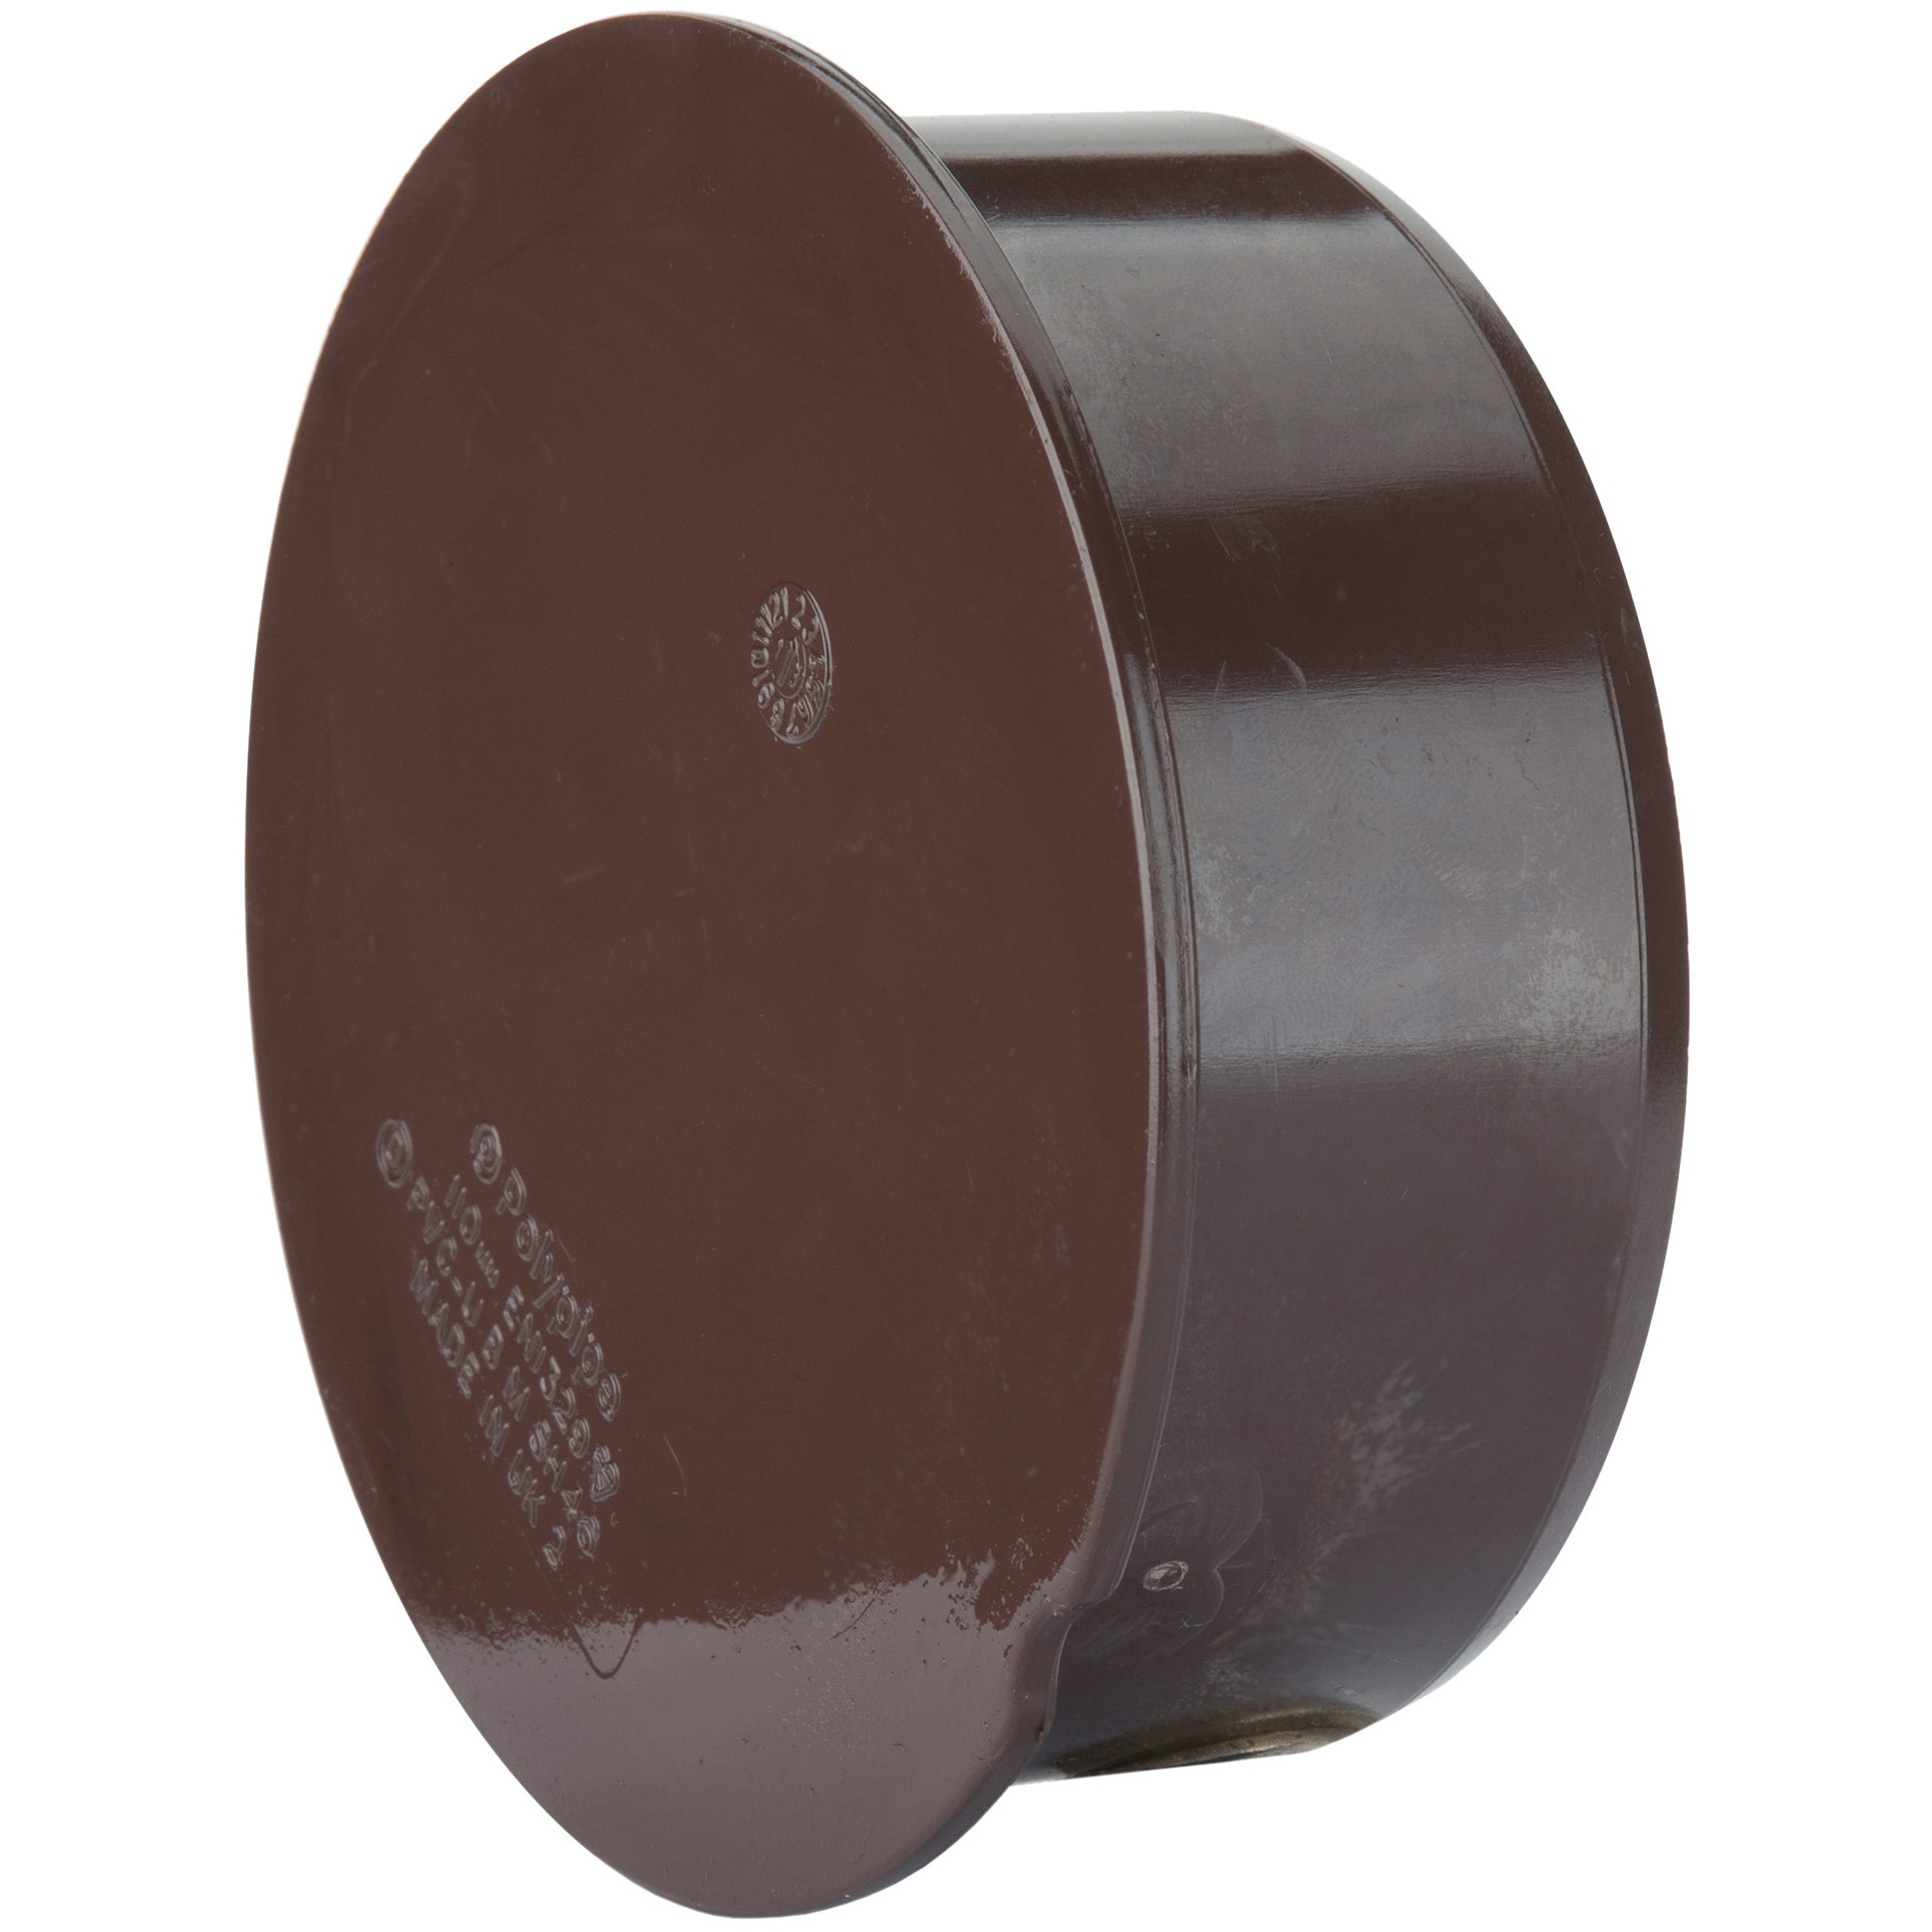 Polypipe 110mm Soil Socket Plug - Brown